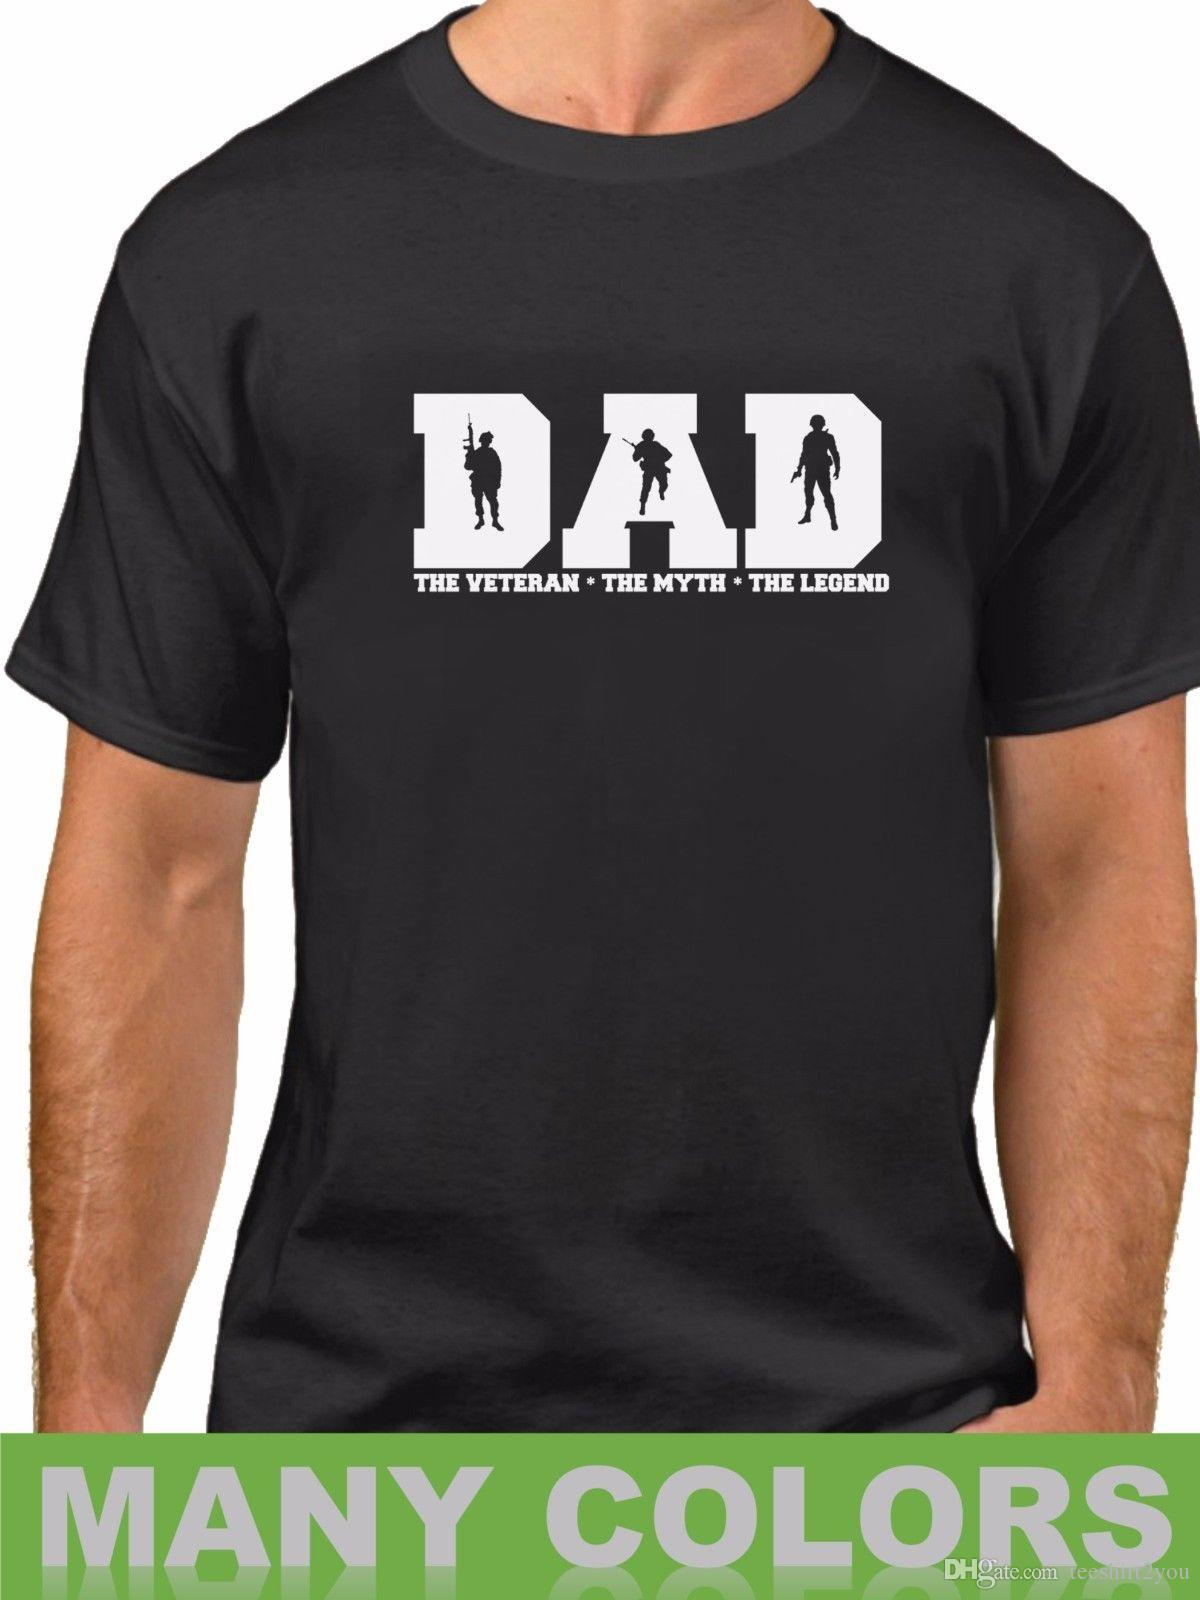 644025a8 Dad The Veteran Myth Legend Shirt Champs Usa Soldier Veterans Day Fathers  Day T Shirt Short Sleeve Custom Tshirt Men New Style Hot Sale Cott Skull T  Shirts ...